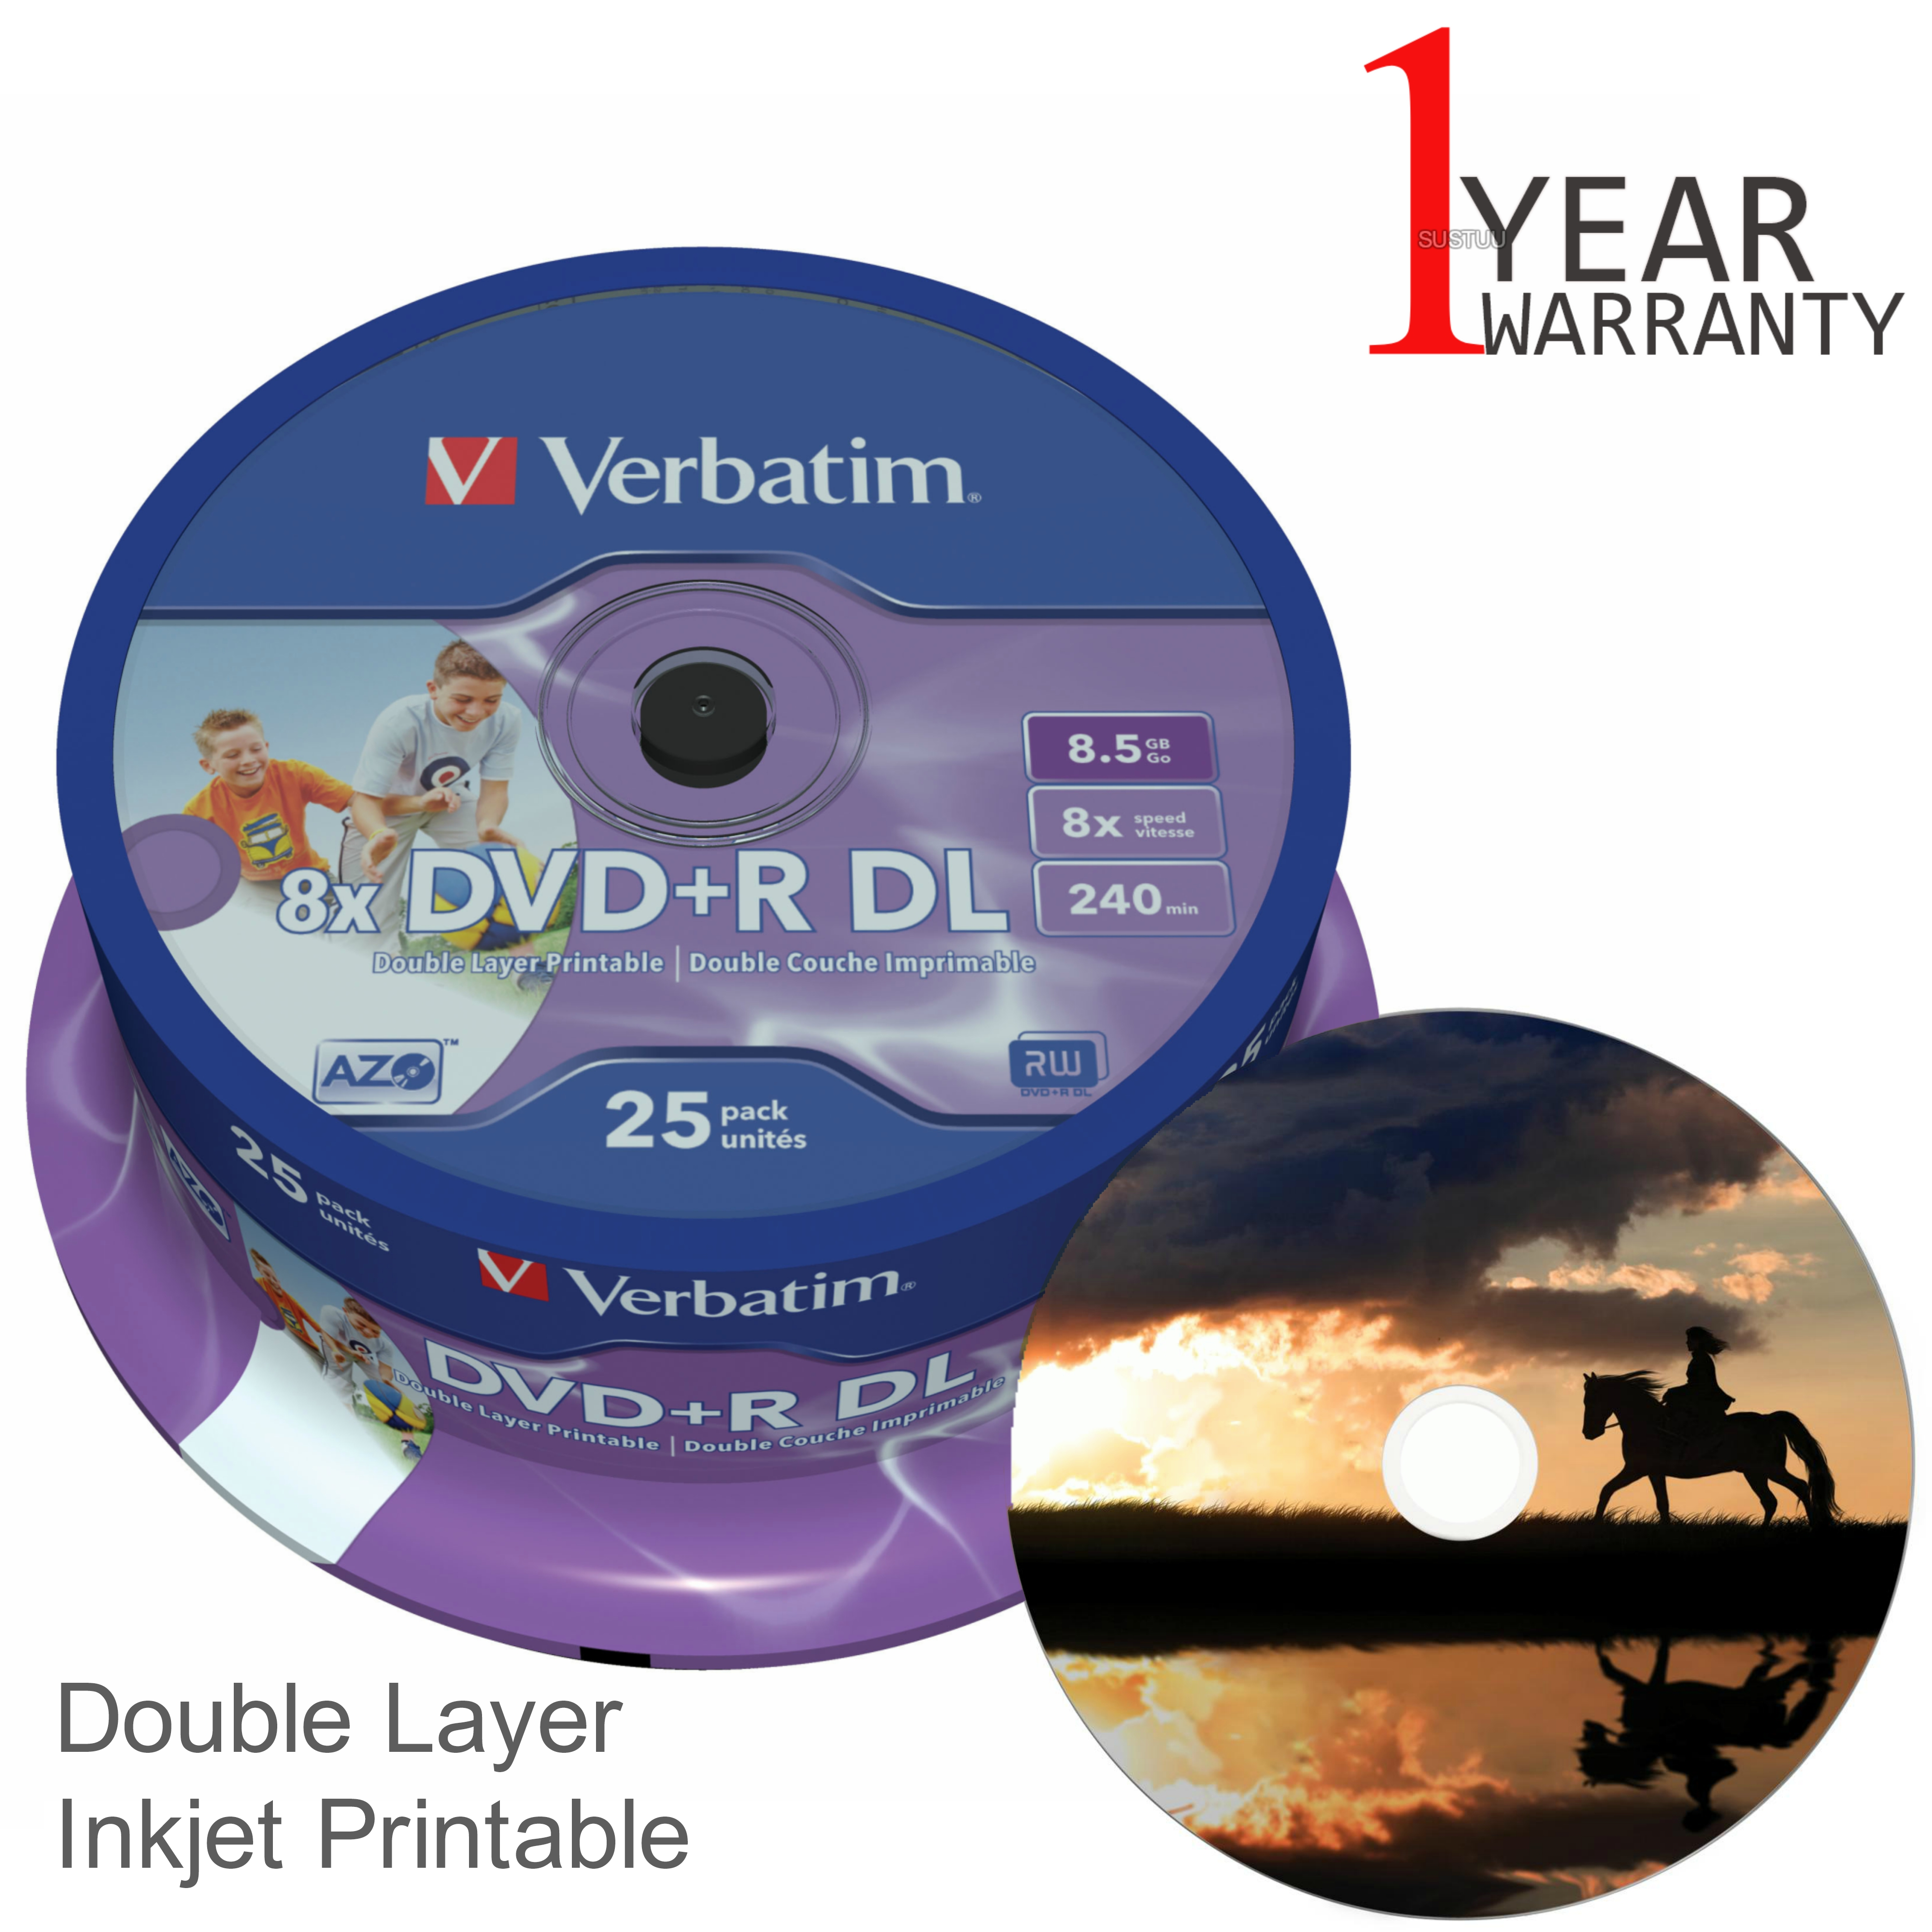 Verbatim 43667 DVD+R 8.5GB 8x DL 240min Printable Dual Layer | 25 Pack | Matt Silver